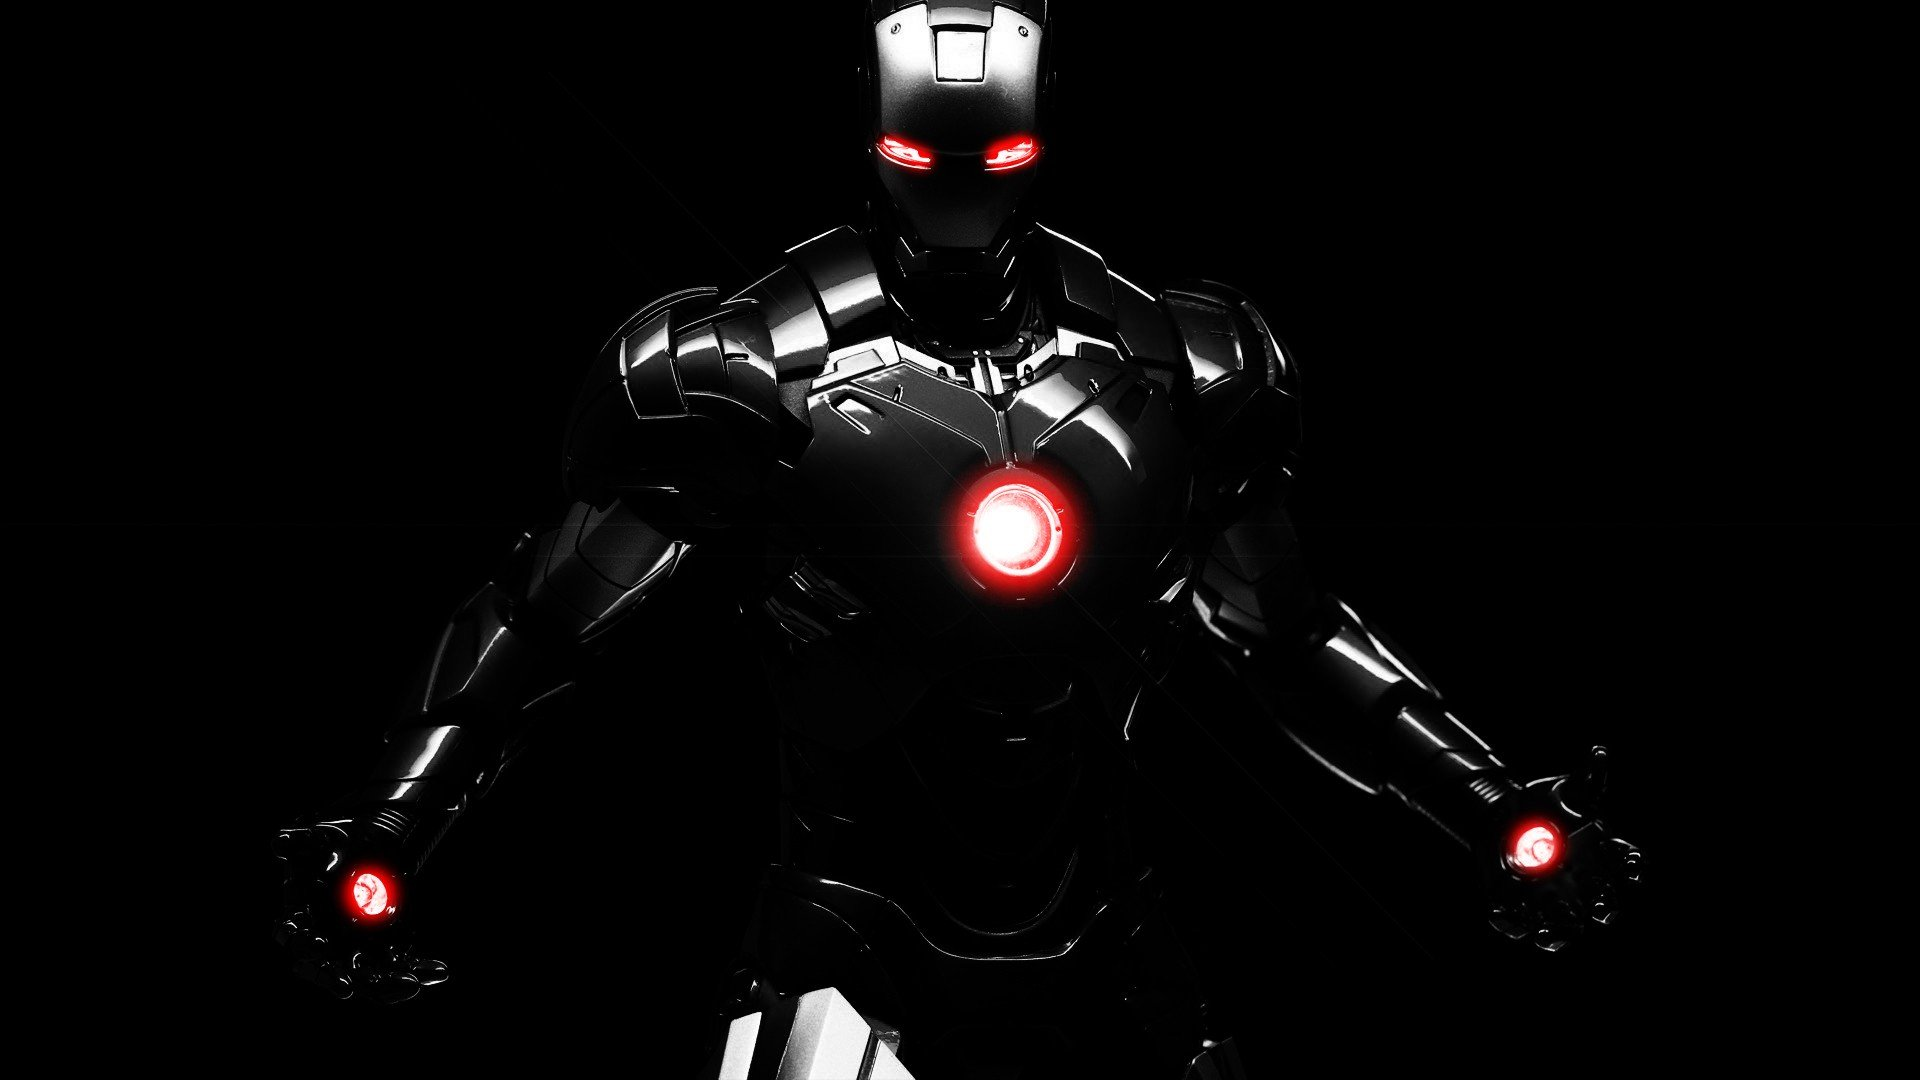 black-iron-man-background-picture-new-best-hd-wallpapers-of-iron-man